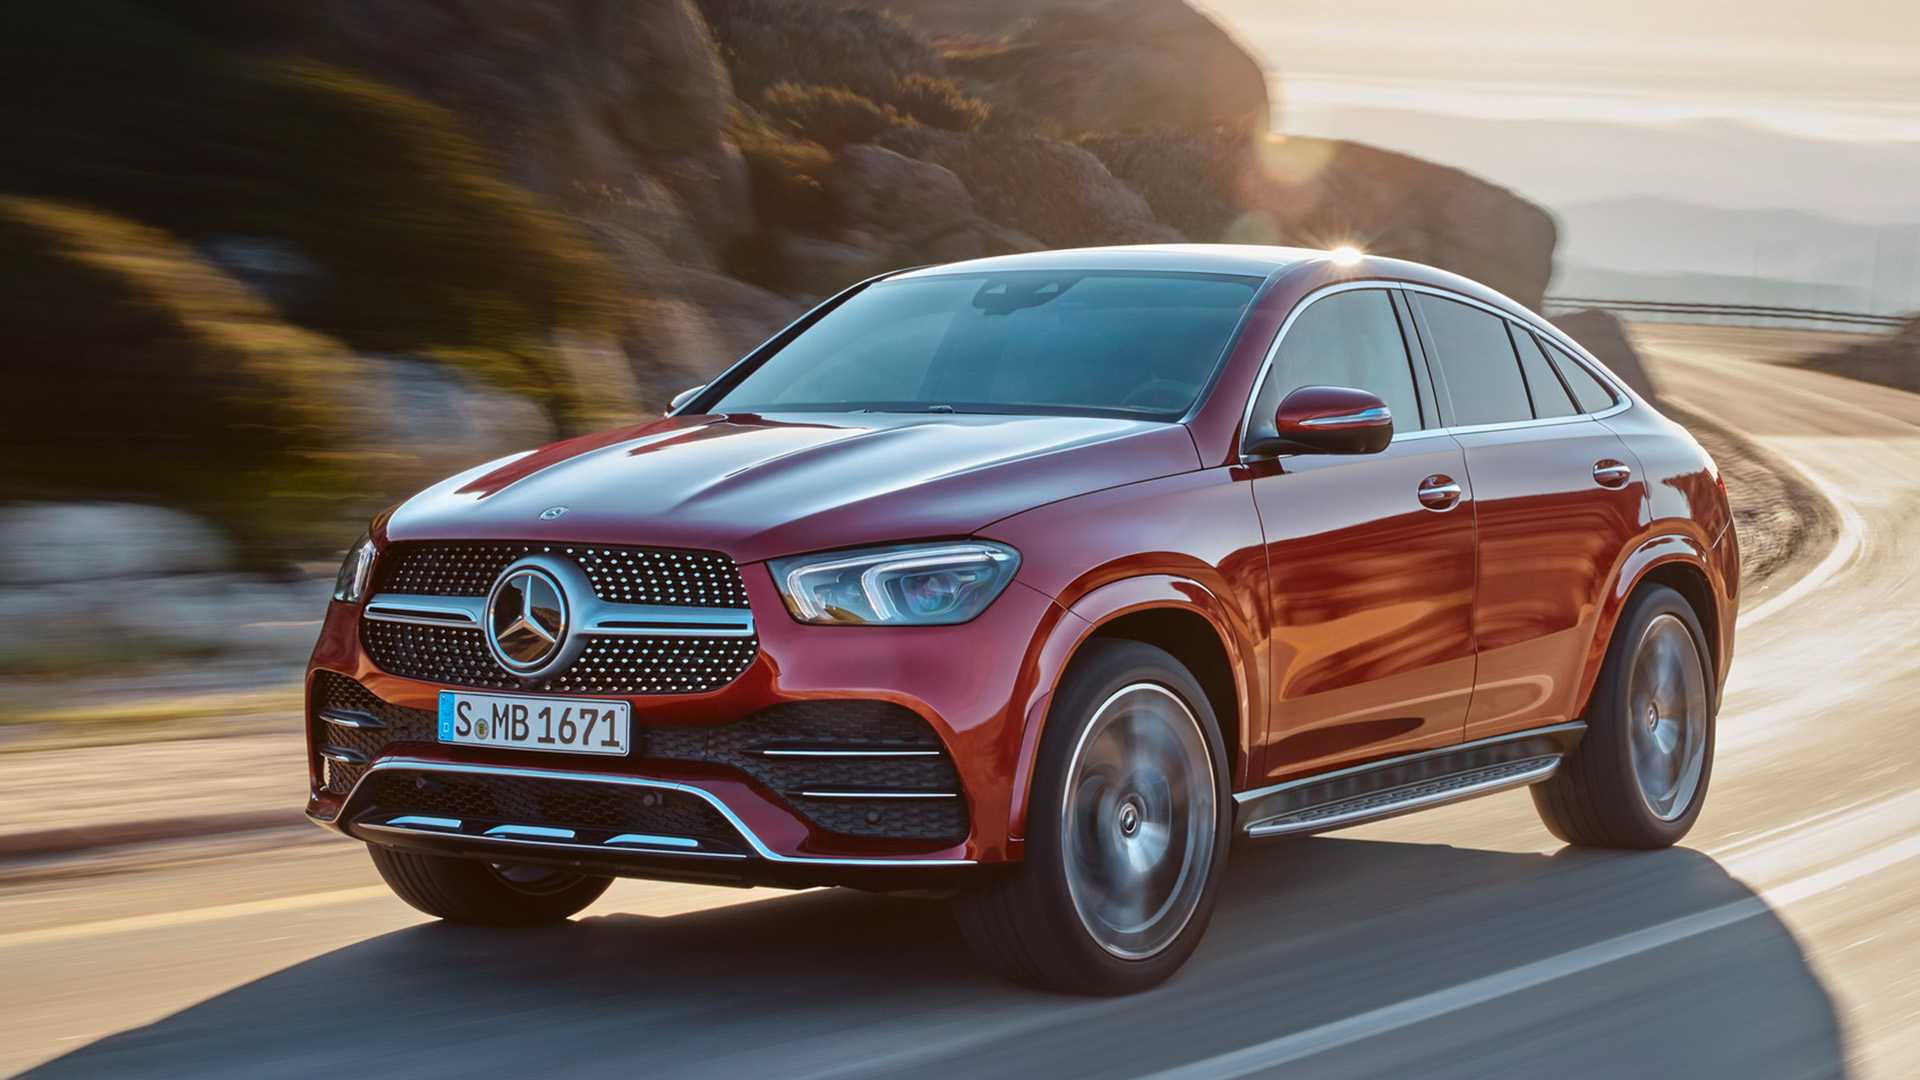 2021 Mercedes-Benz GLE Coupe (Color: Designo Hyacinth Red Metallic) Front Three-Quarter Wallpapers (3)